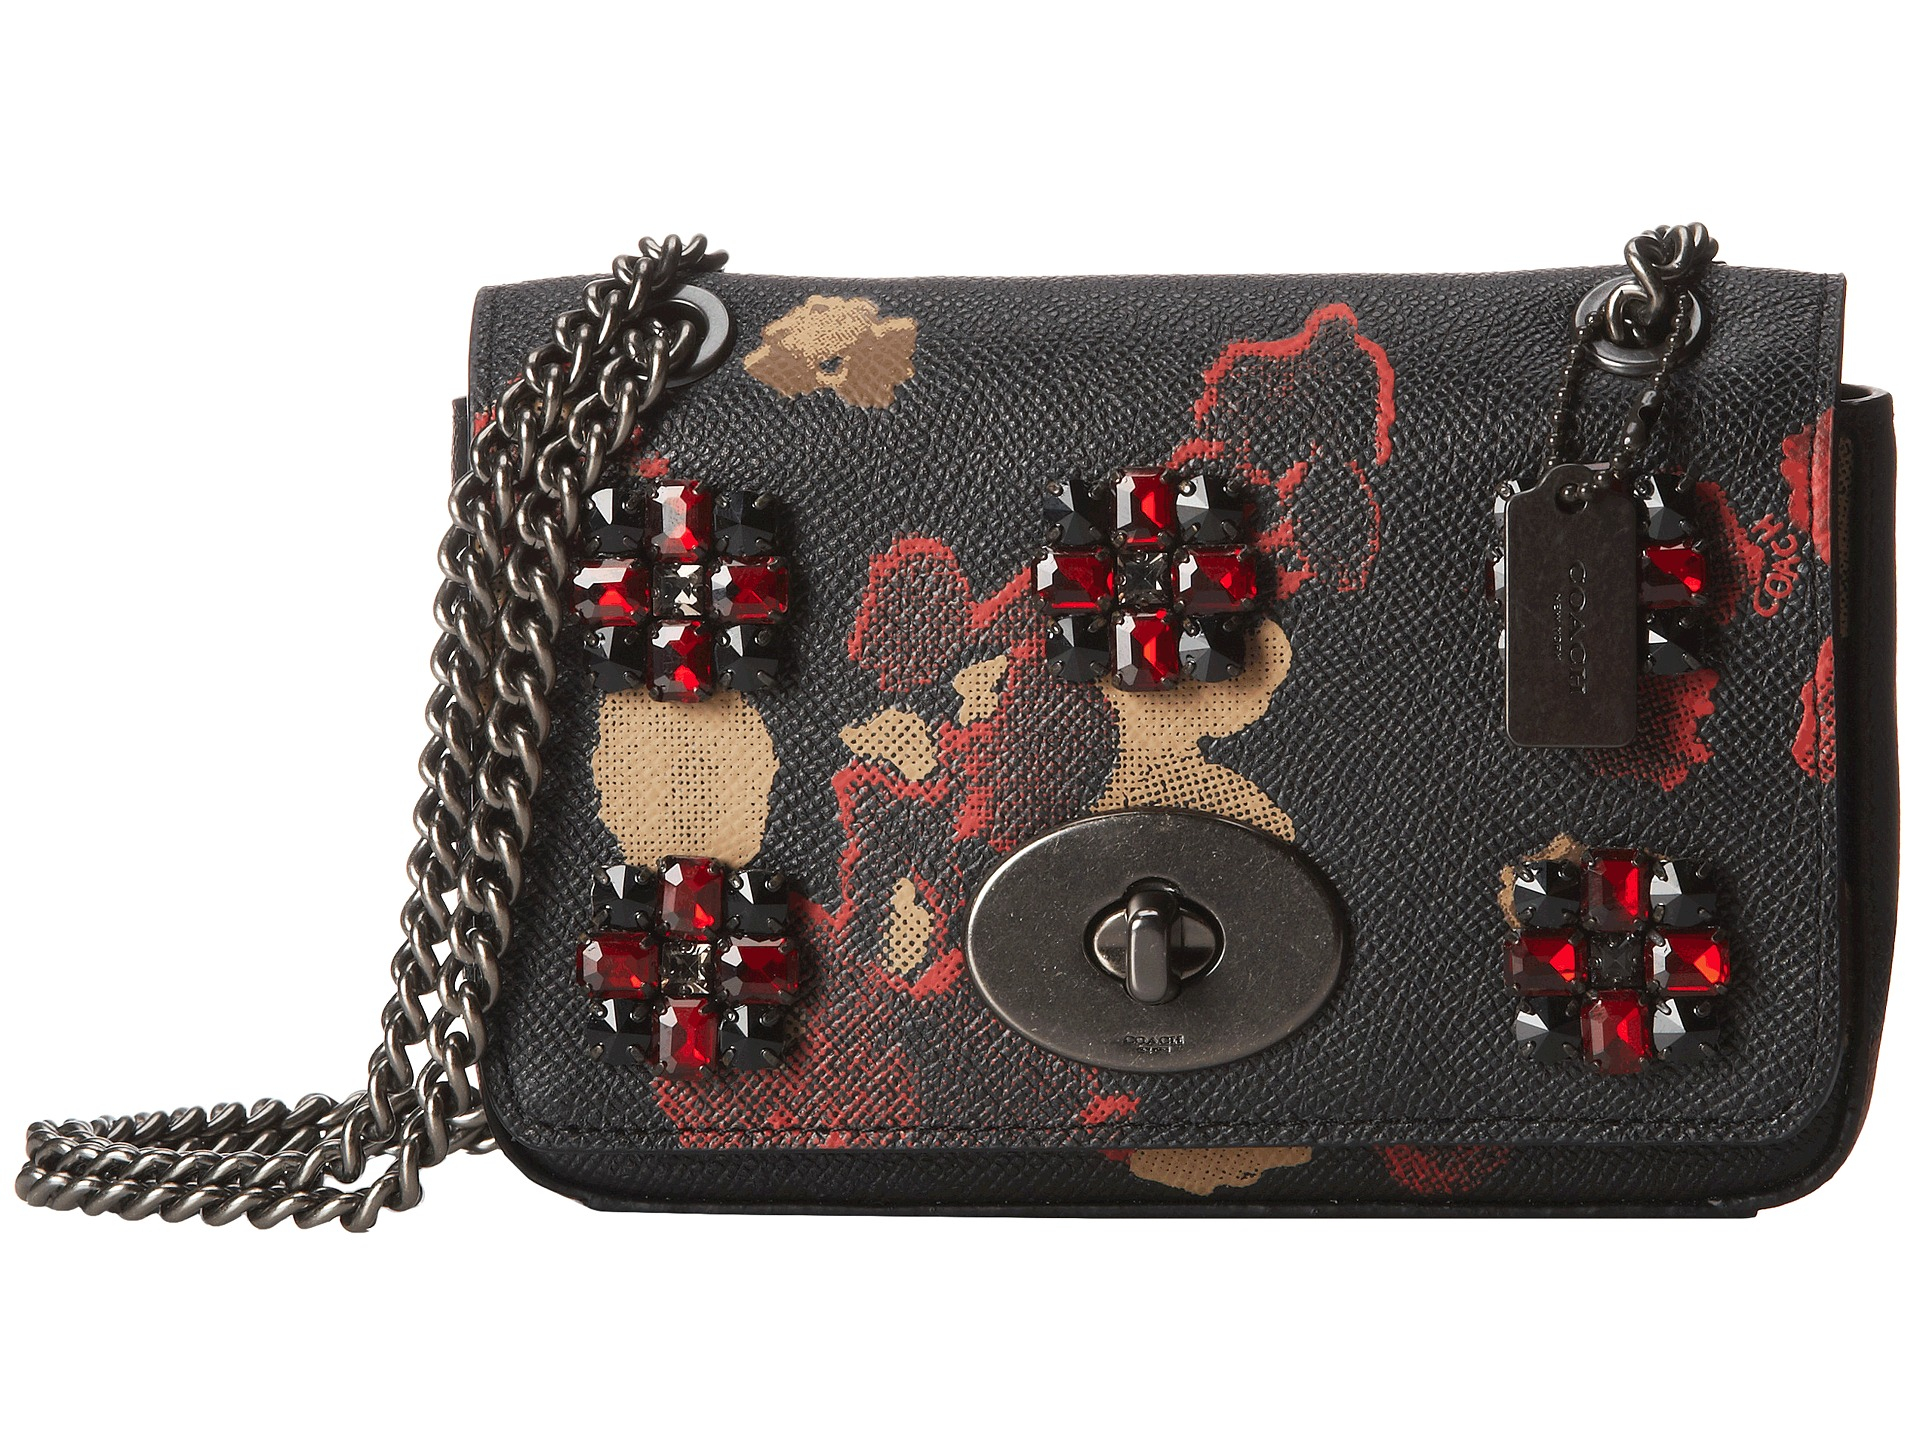 italy lyst coach floral jewels embossed mini chain crossbody in black a51aa  9d6f6 ba6ac5dc03505